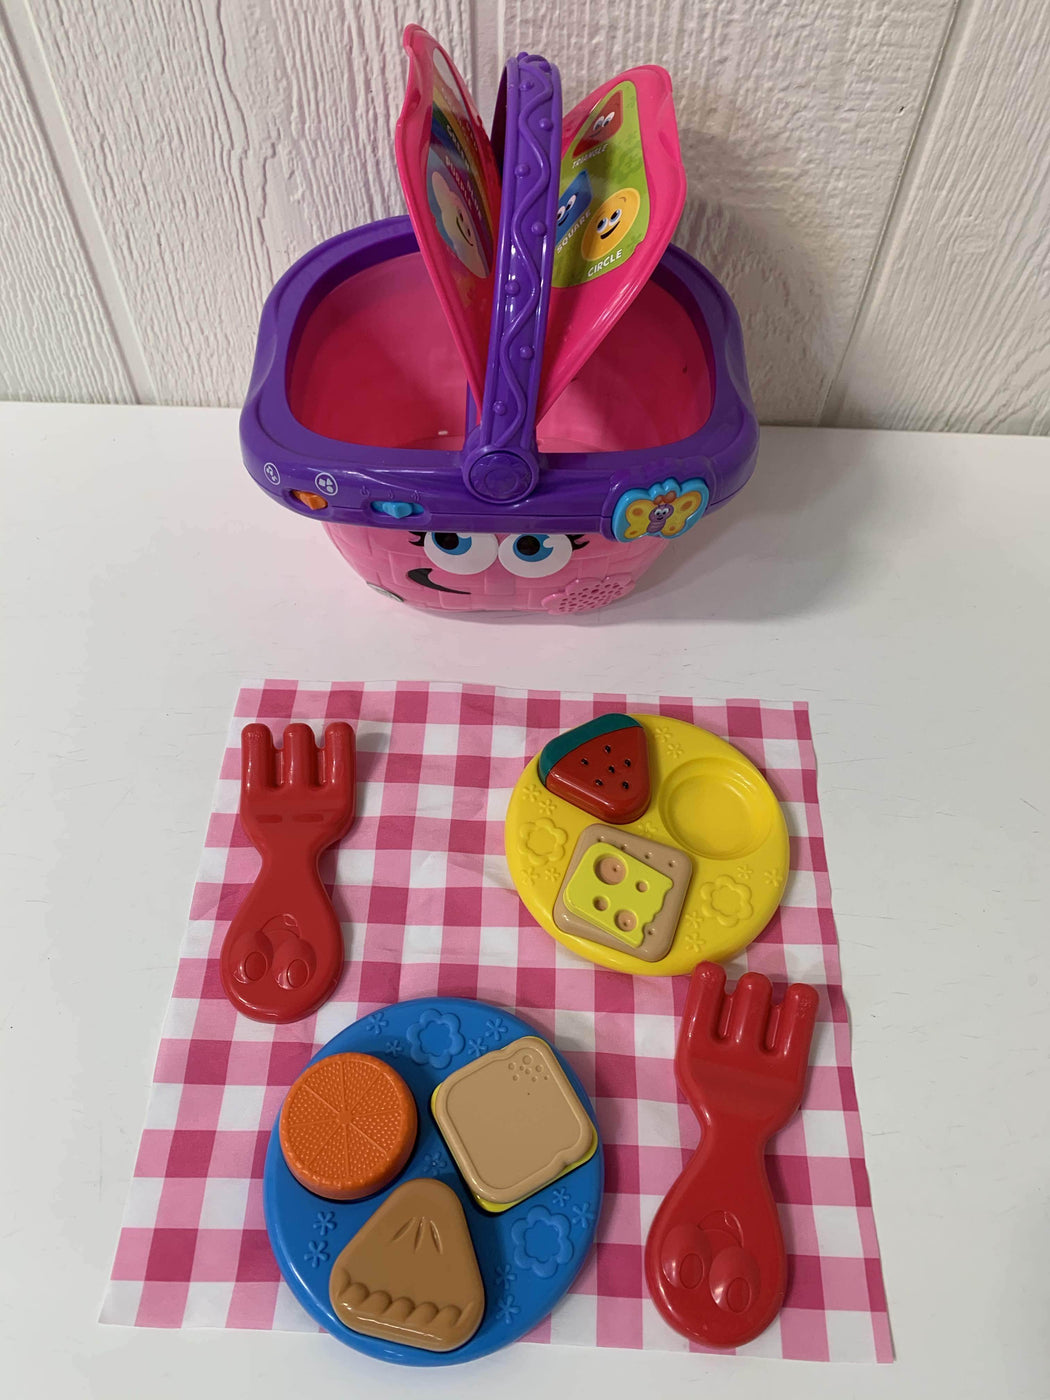 secondhand Leap Frog Shapes And Sharing Picnic Basket